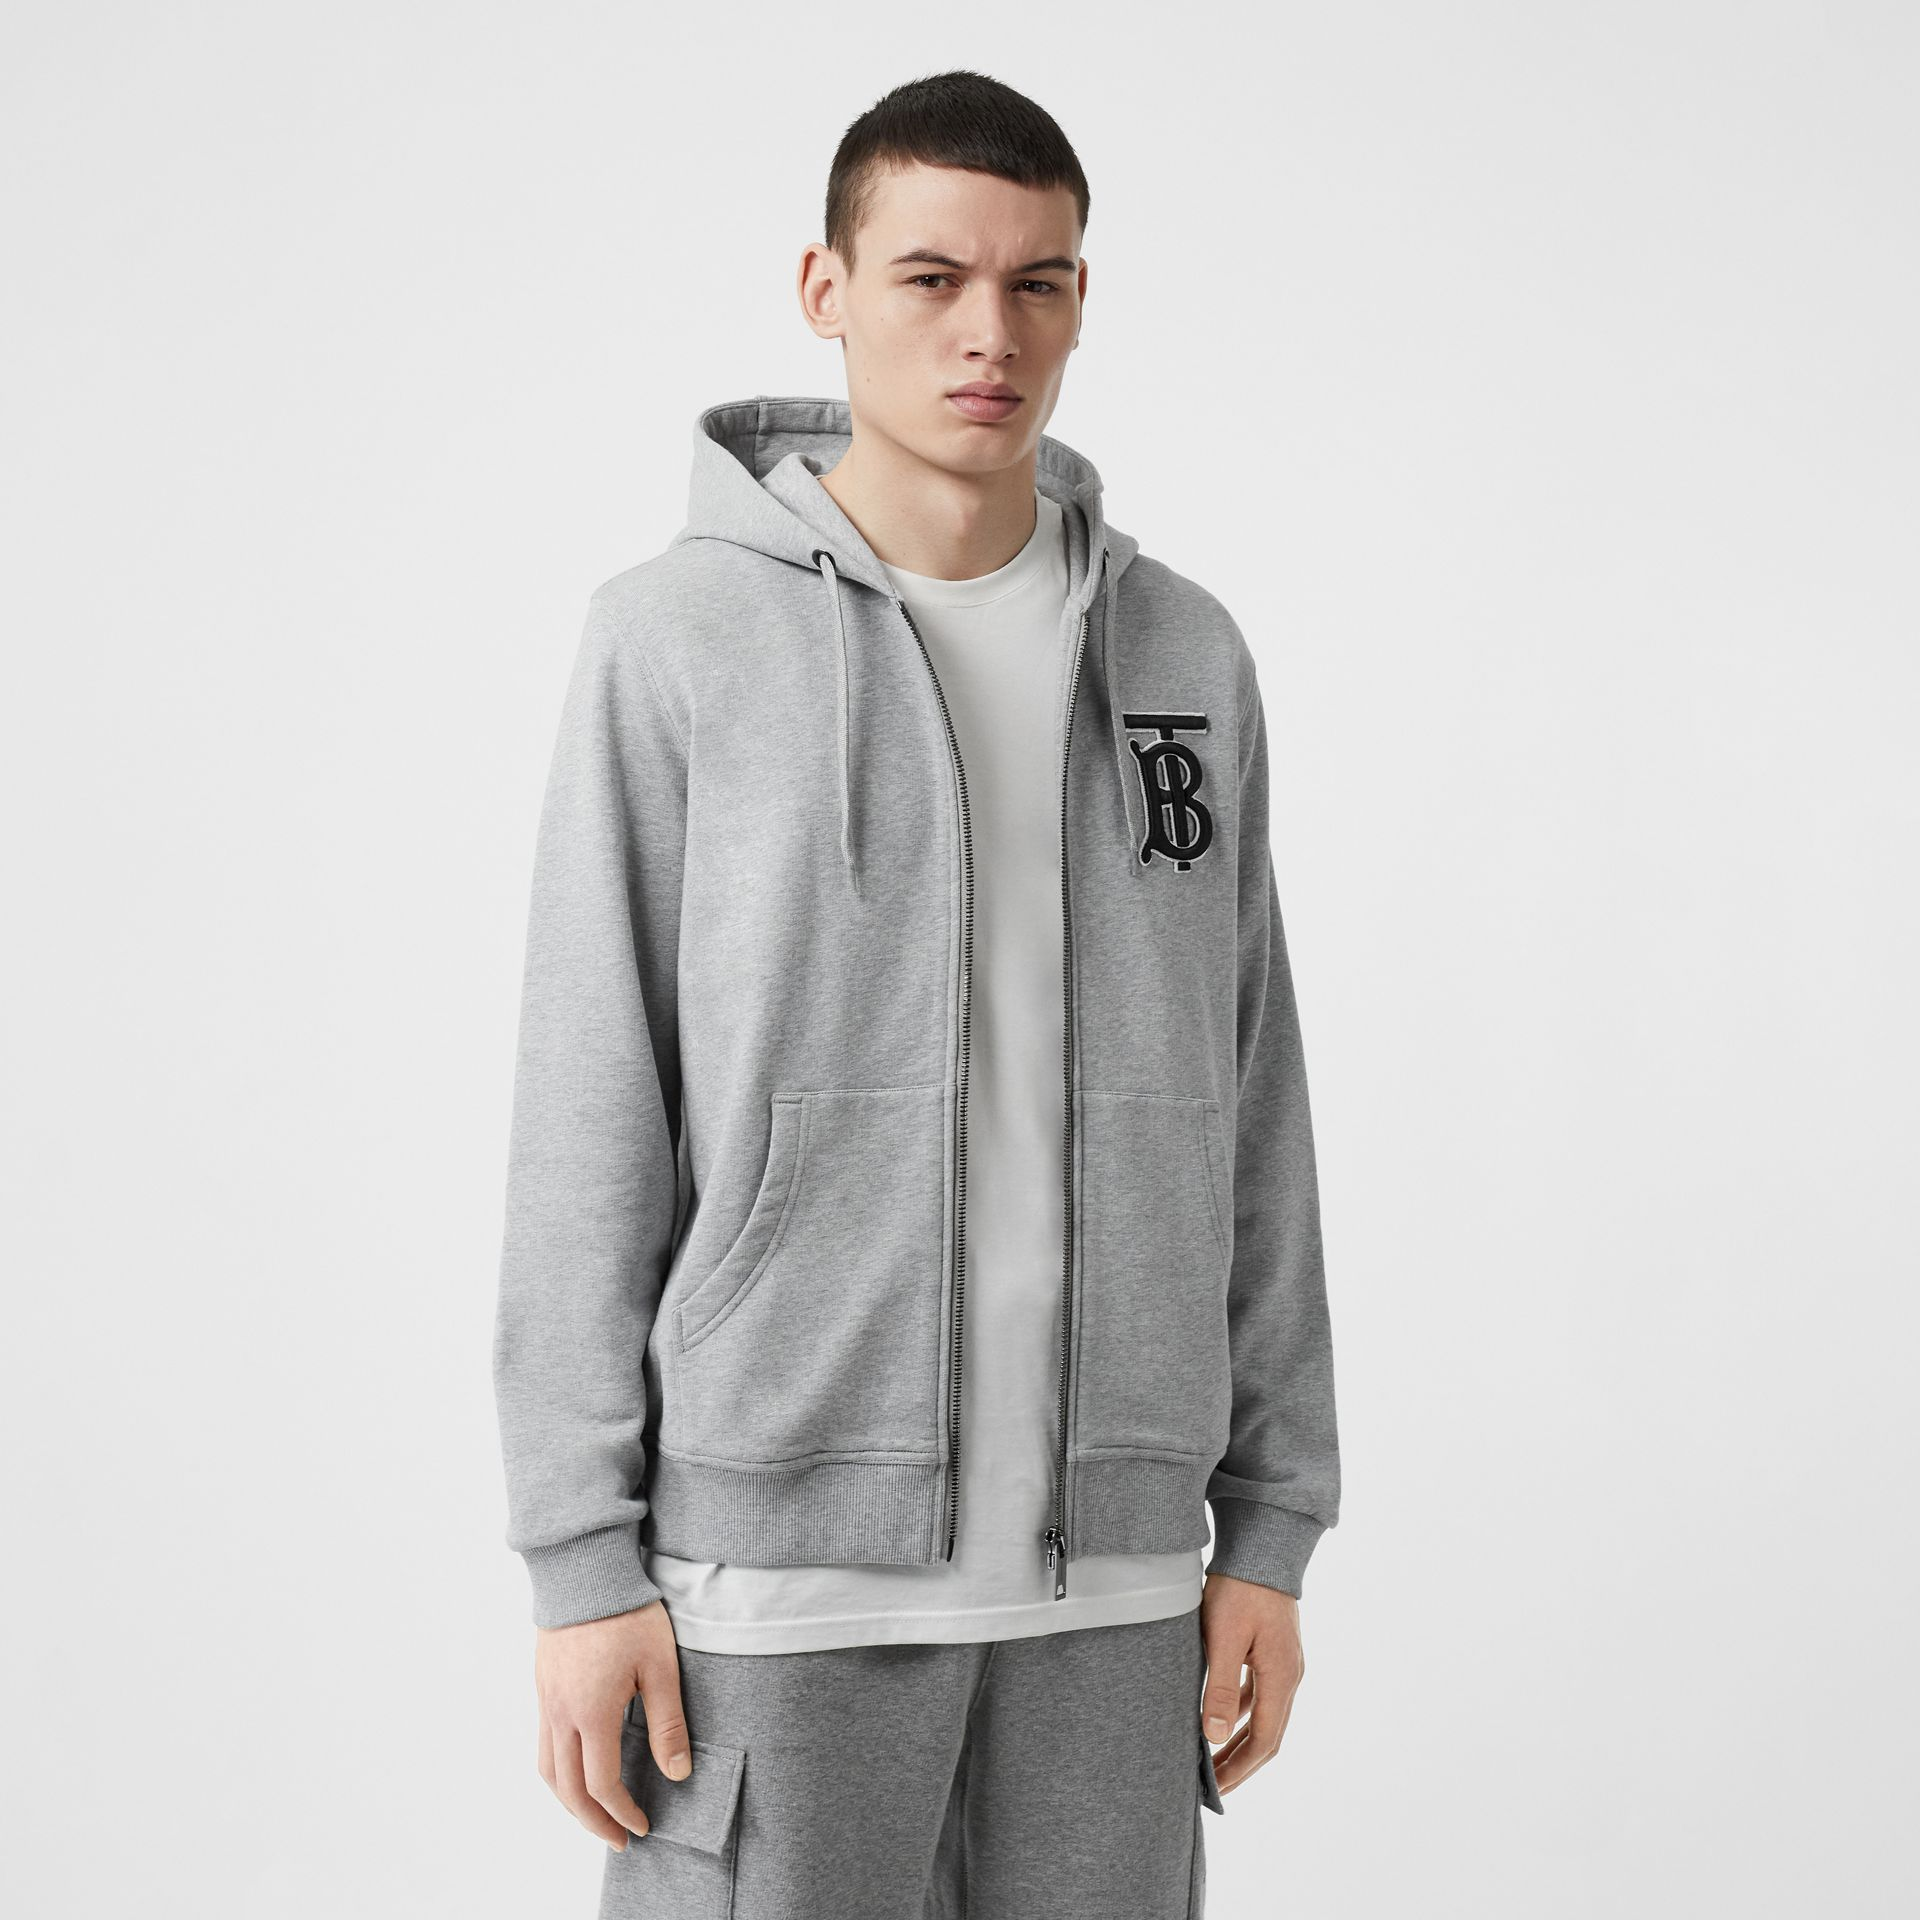 Monogram Motif Cotton Hooded Top in Pale Grey Melange - Men | Burberry - gallery image 3